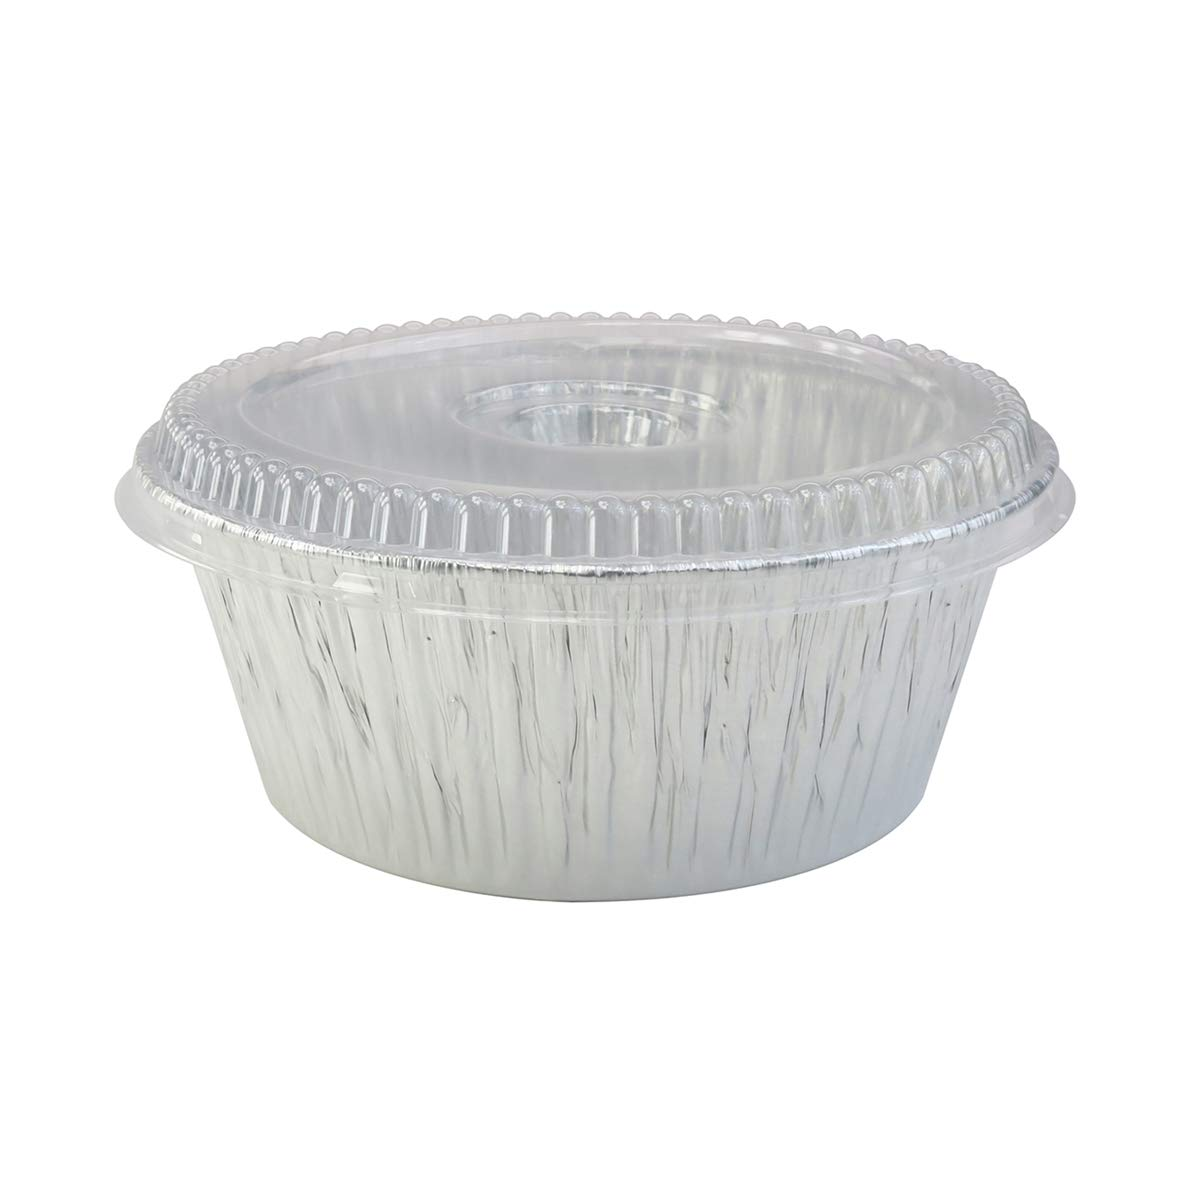 Disposable Aluminum Extra Deep 10'' Round All Purpose Baking Pan With Clear Dome Lid#1600P (10)